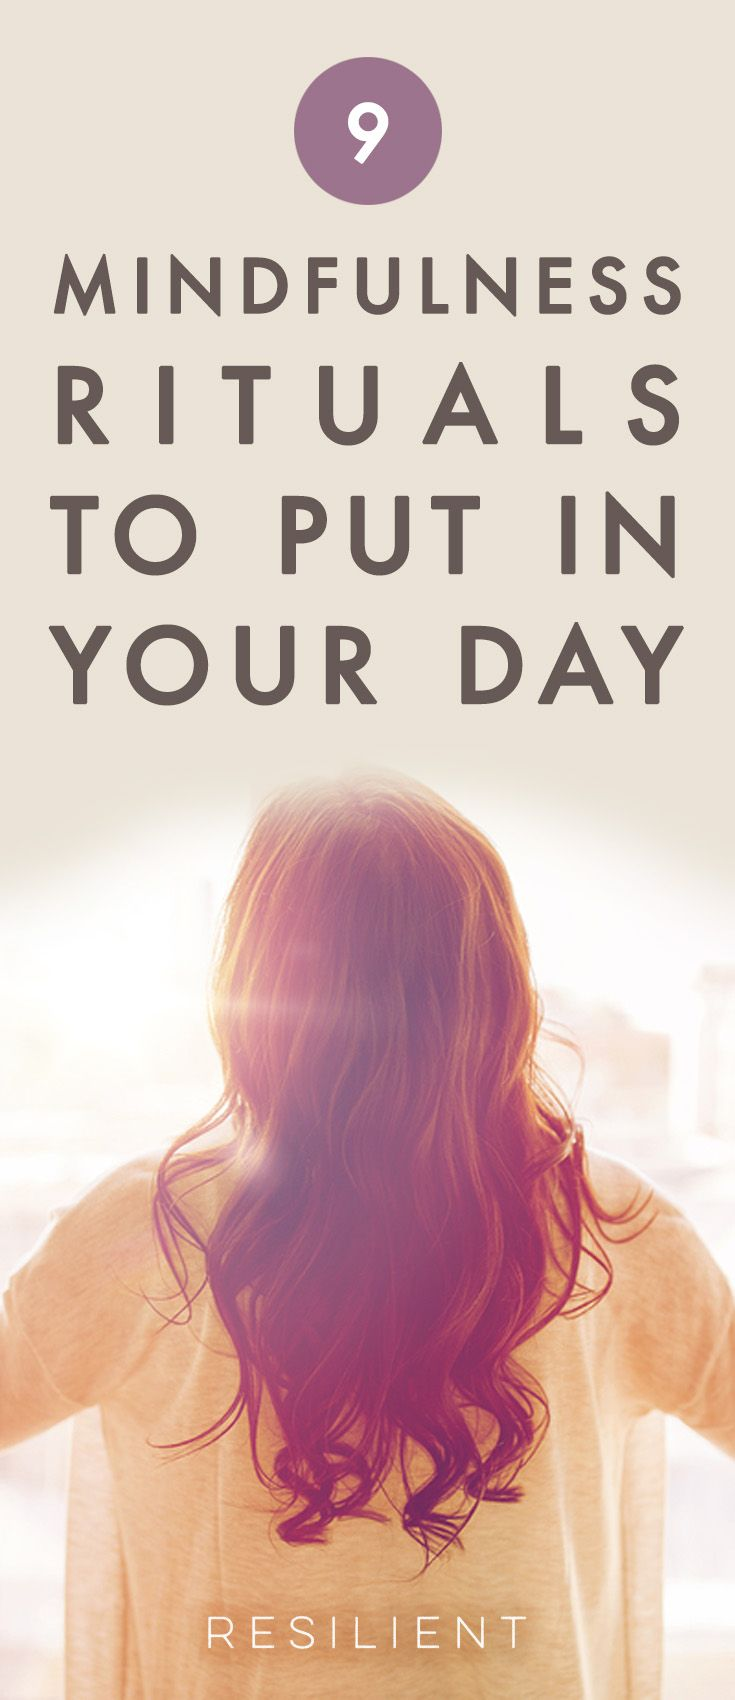 Are you simply moving through your day, without fully living? I did this for many years. It was as if life were just passing by, and I was waiting for something to happen. I always felt like I was preparing for something later. But today isn't preparation for tomorrow. Today is the main event. Here are 9 mindfulness rituals to make your day better. #mindfulness #mindful #mindfulnessritual